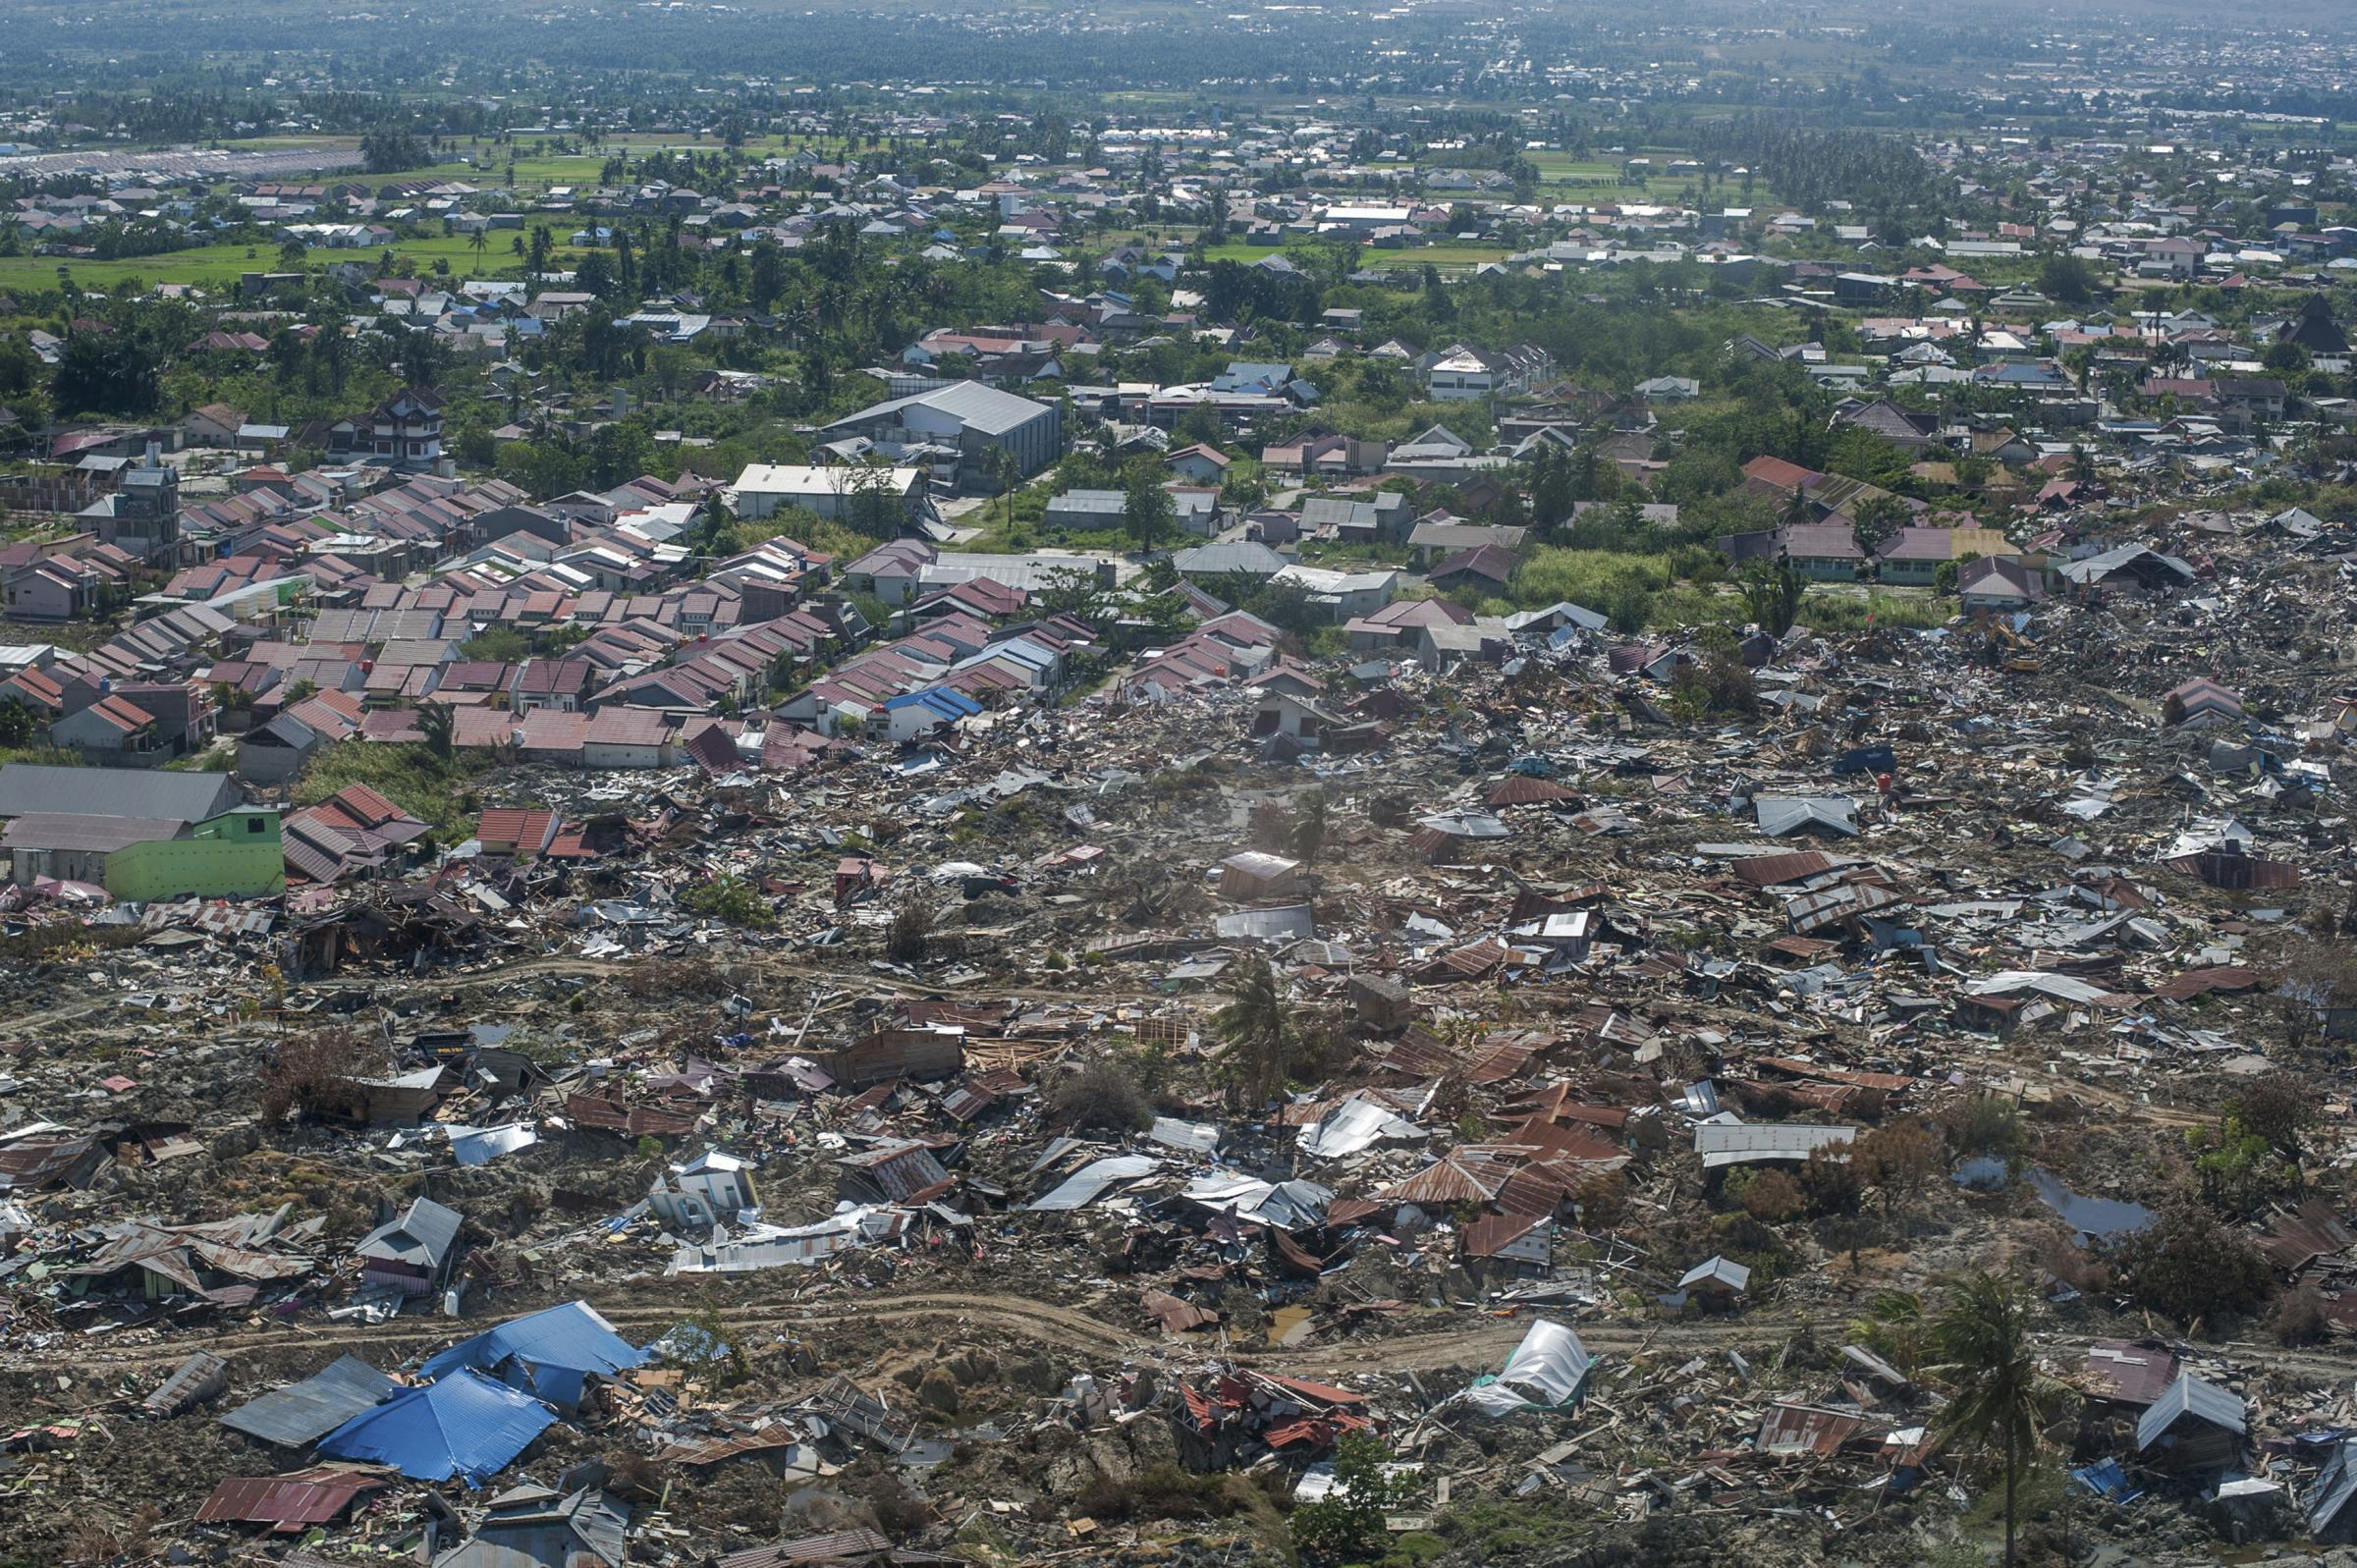 The natural disasters wreaked havoc on the Indonesian island of Sulawesi